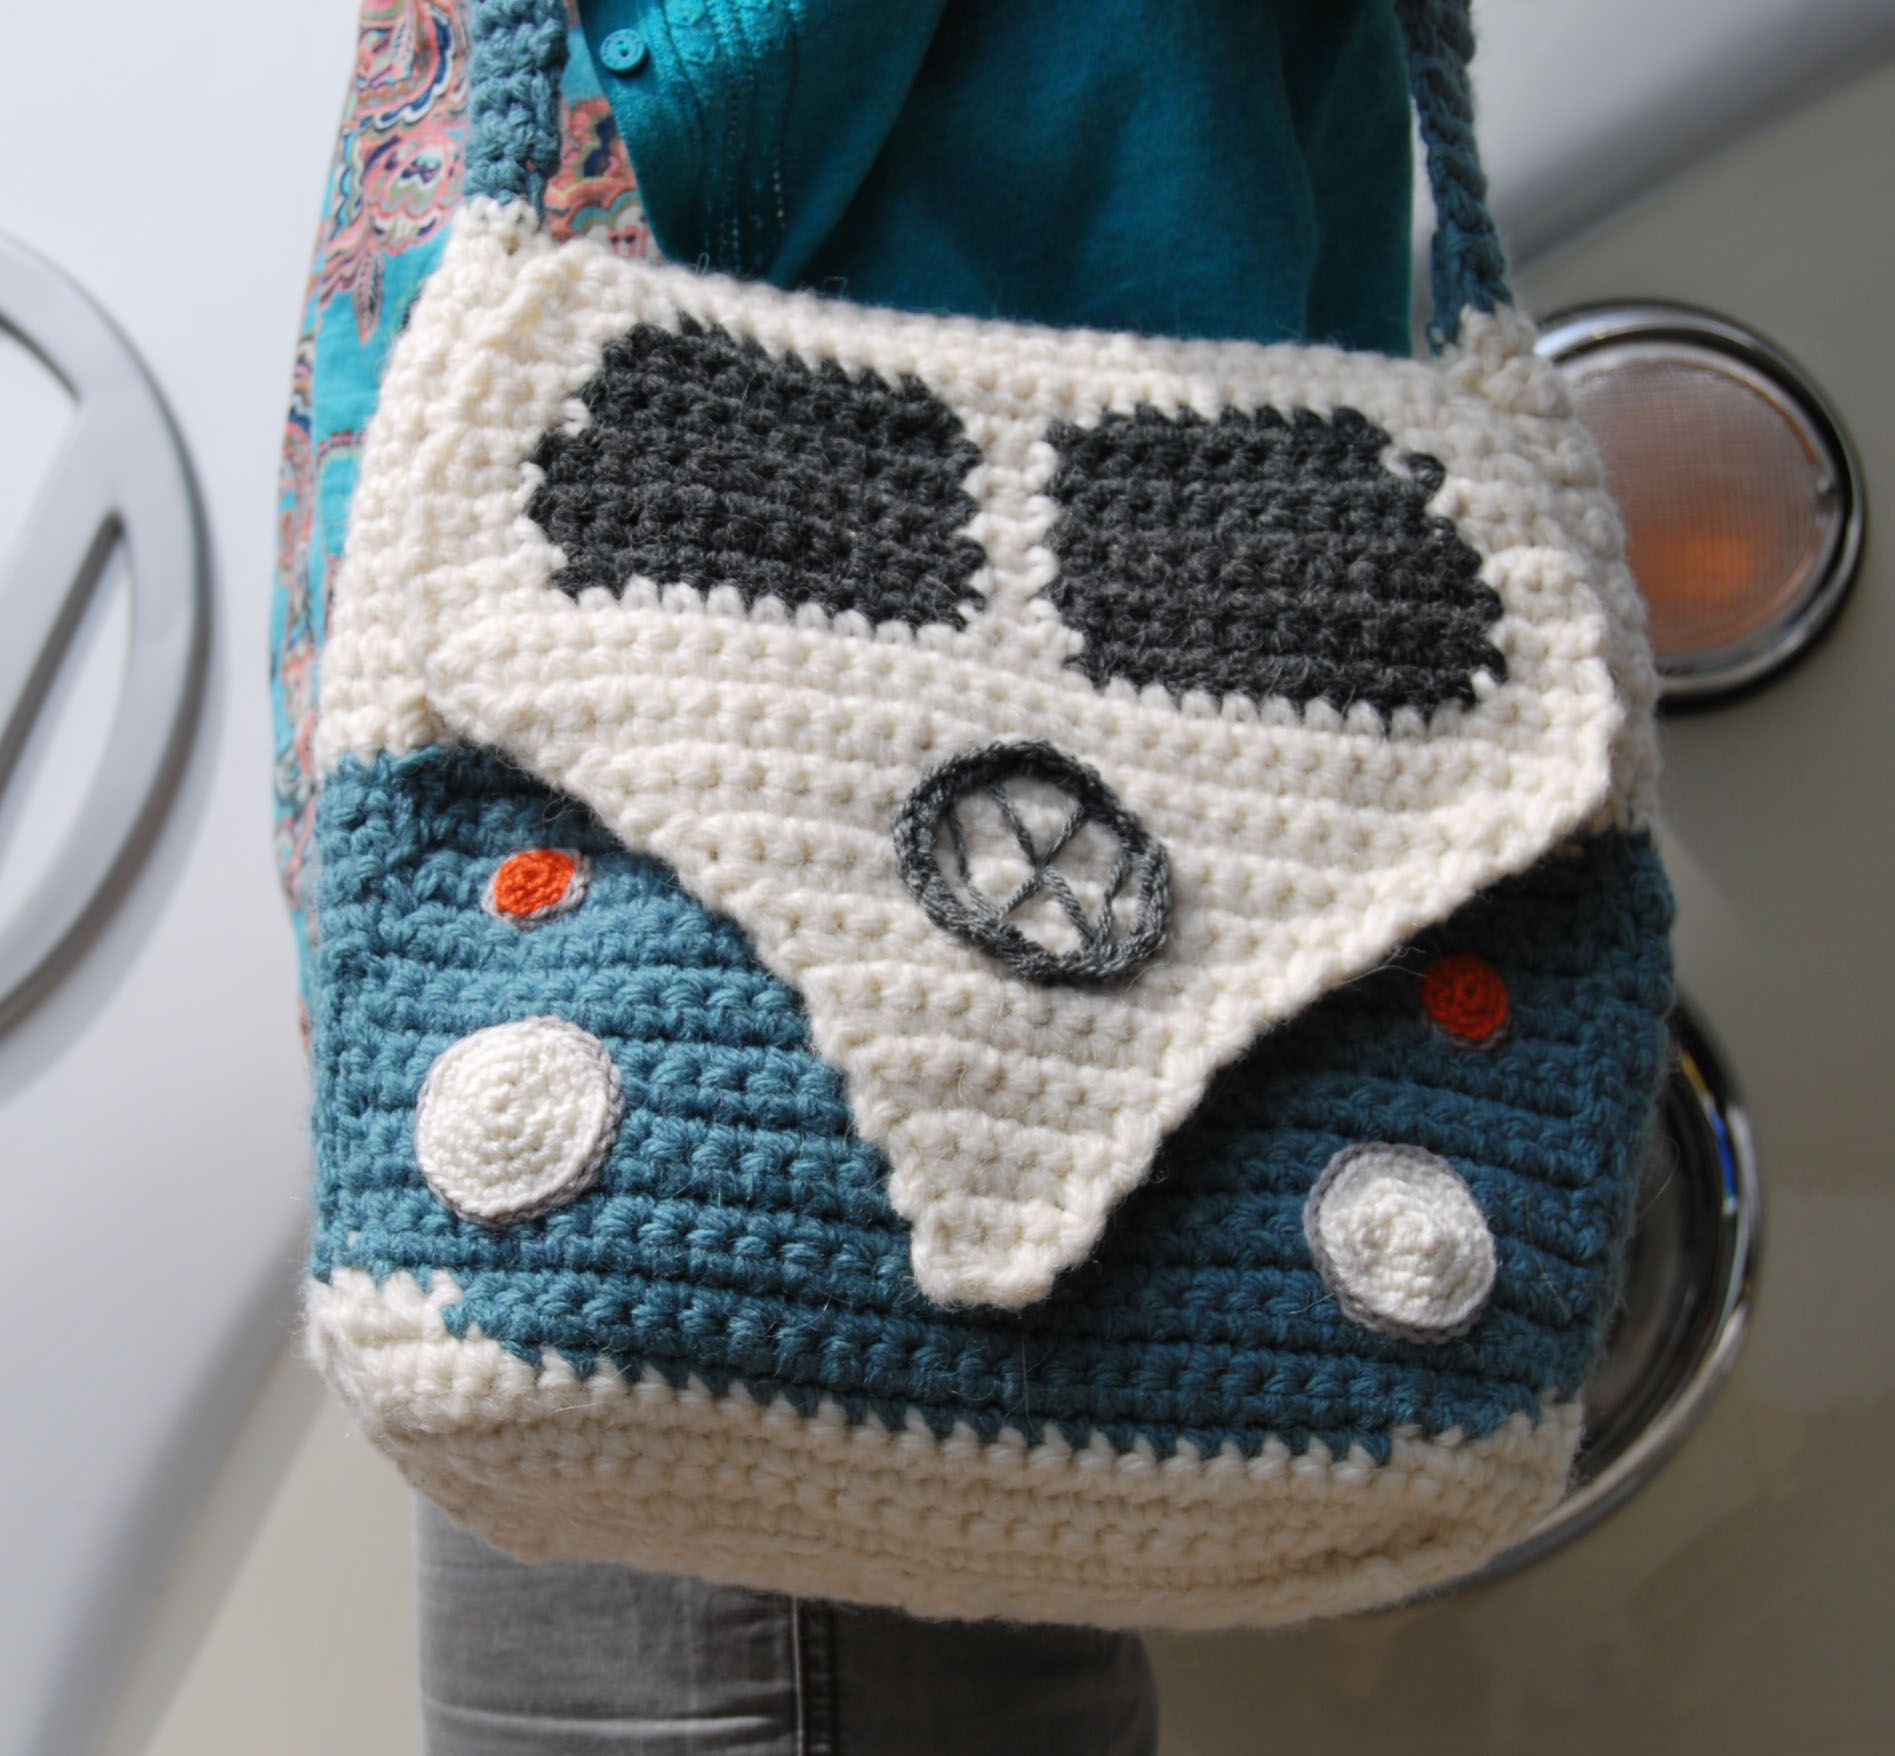 Campervan Shoulder Bag wearing it view | Paid Patterns | Pinterest ...